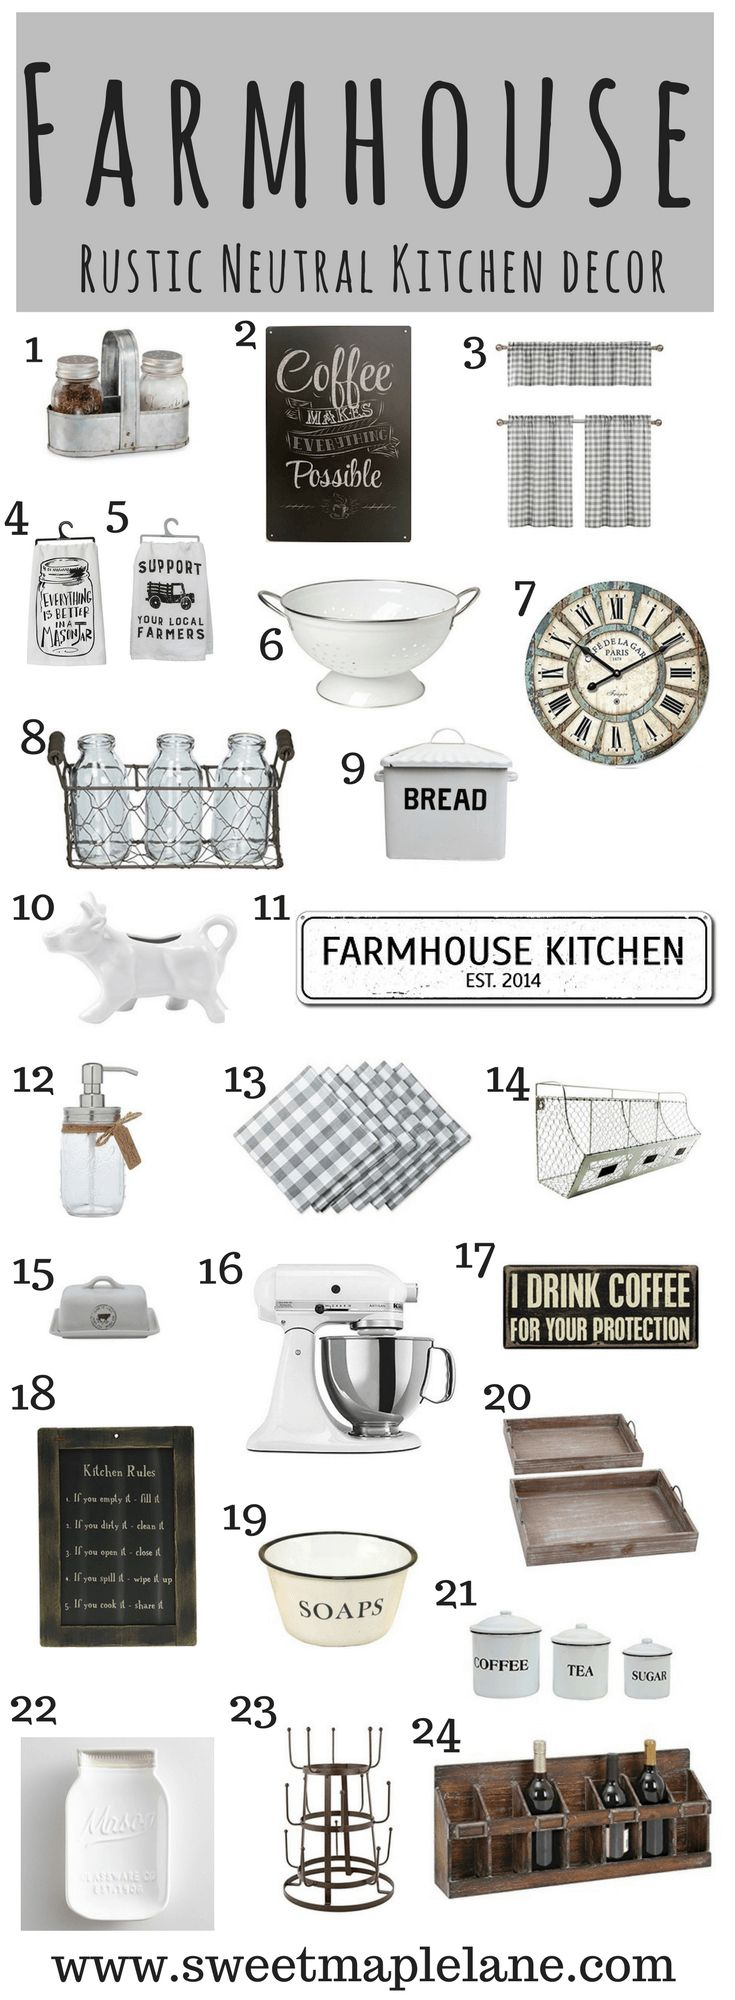 The ultimate list of rustic neutral farmhouse kitchen decor!